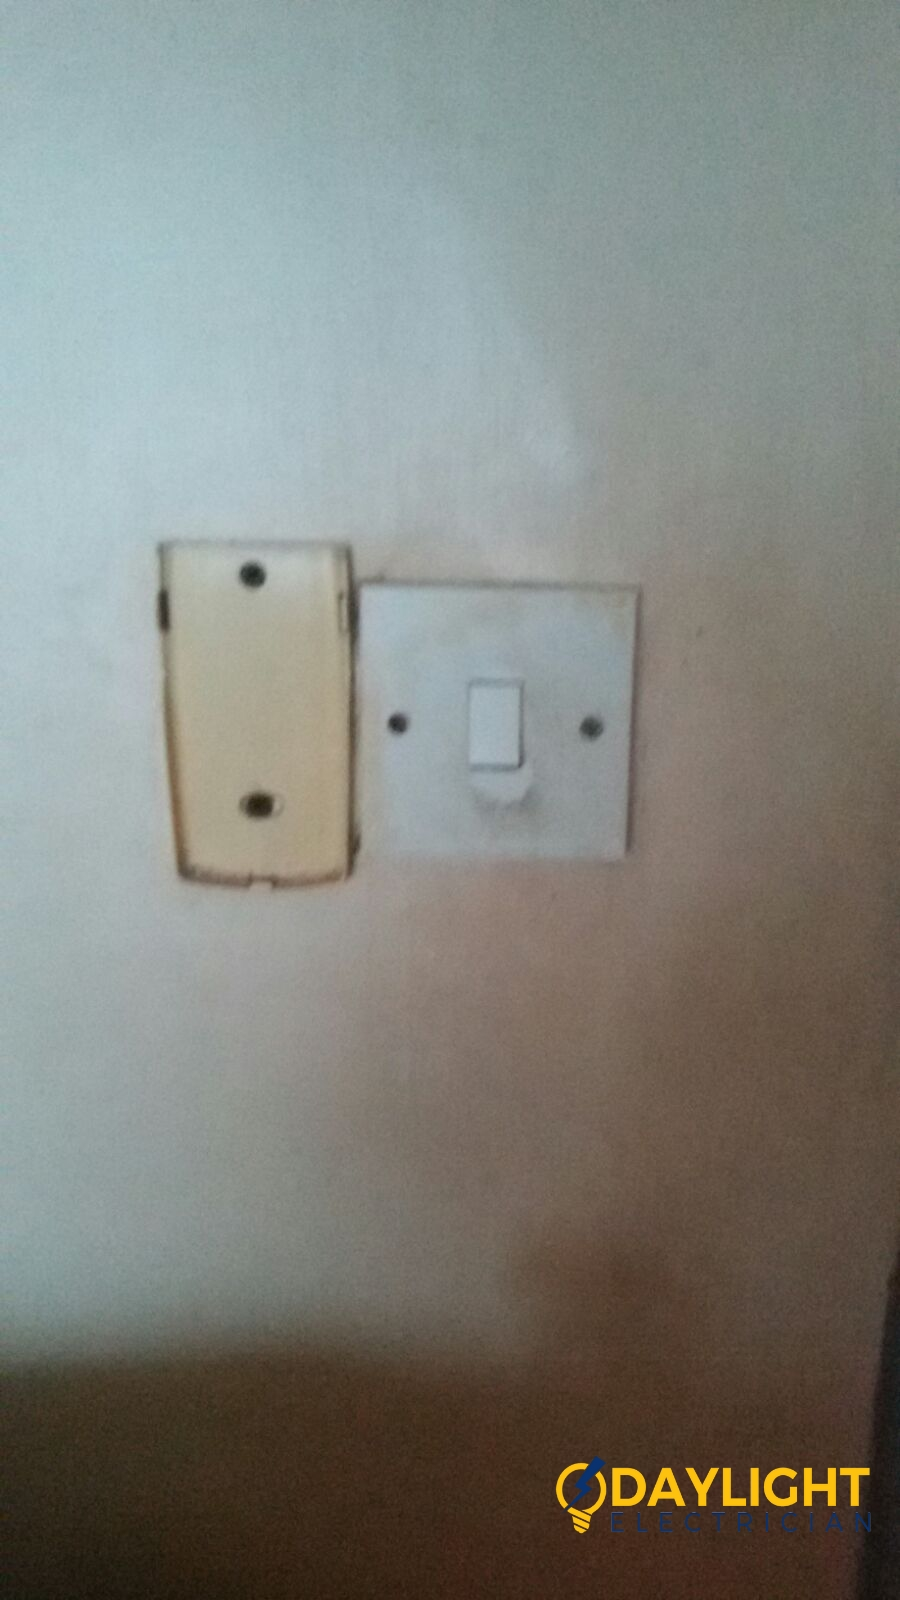 replace-light-switch-electrician-singapore-bedok-hdb-3